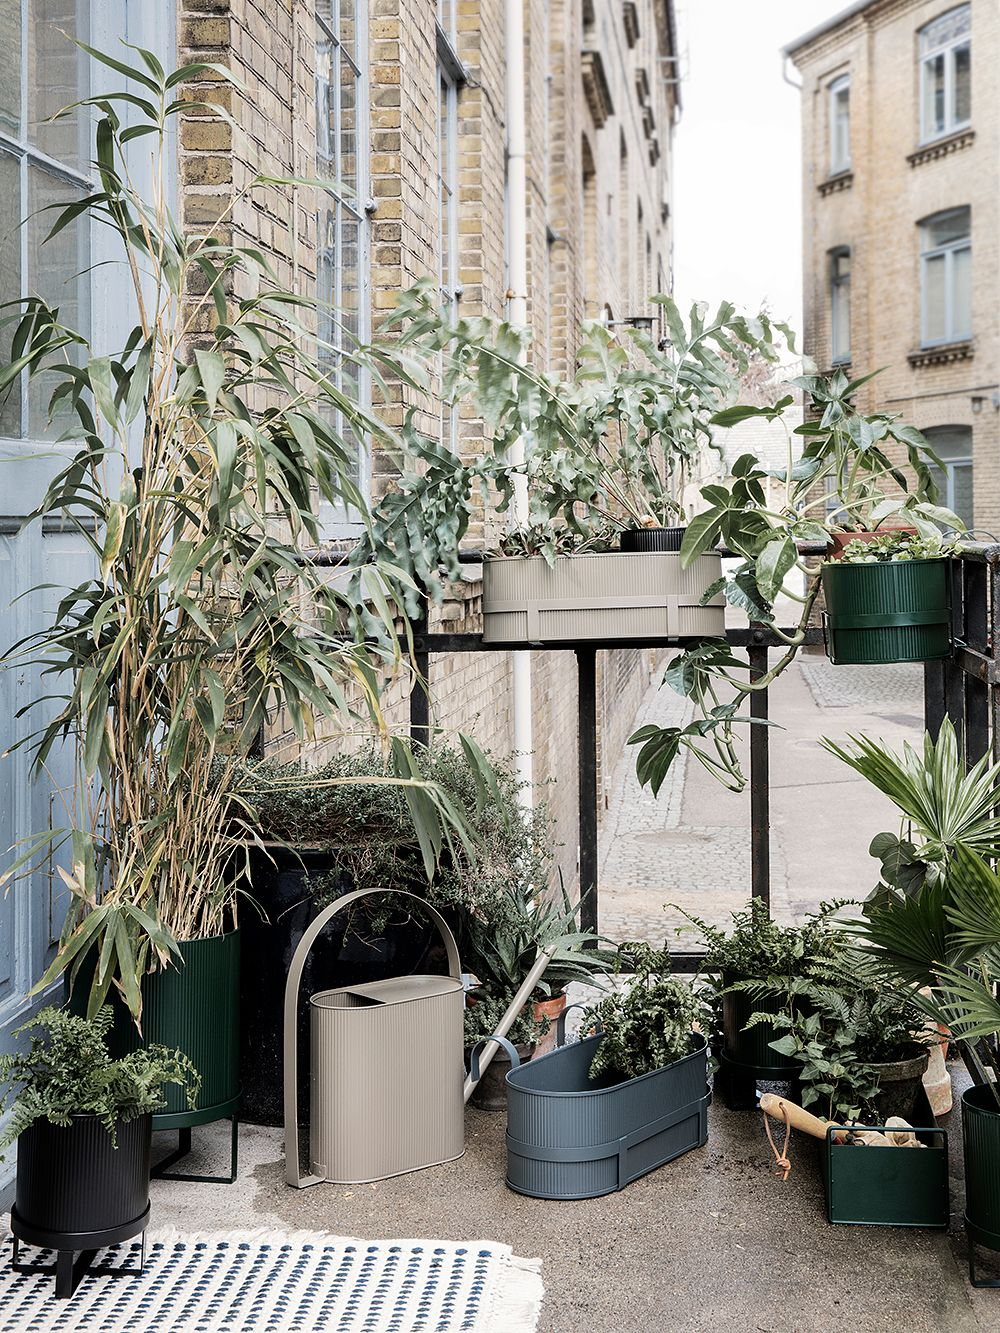 Ferm Living's Bau balcony boxes and pots on a balcony with a city view.